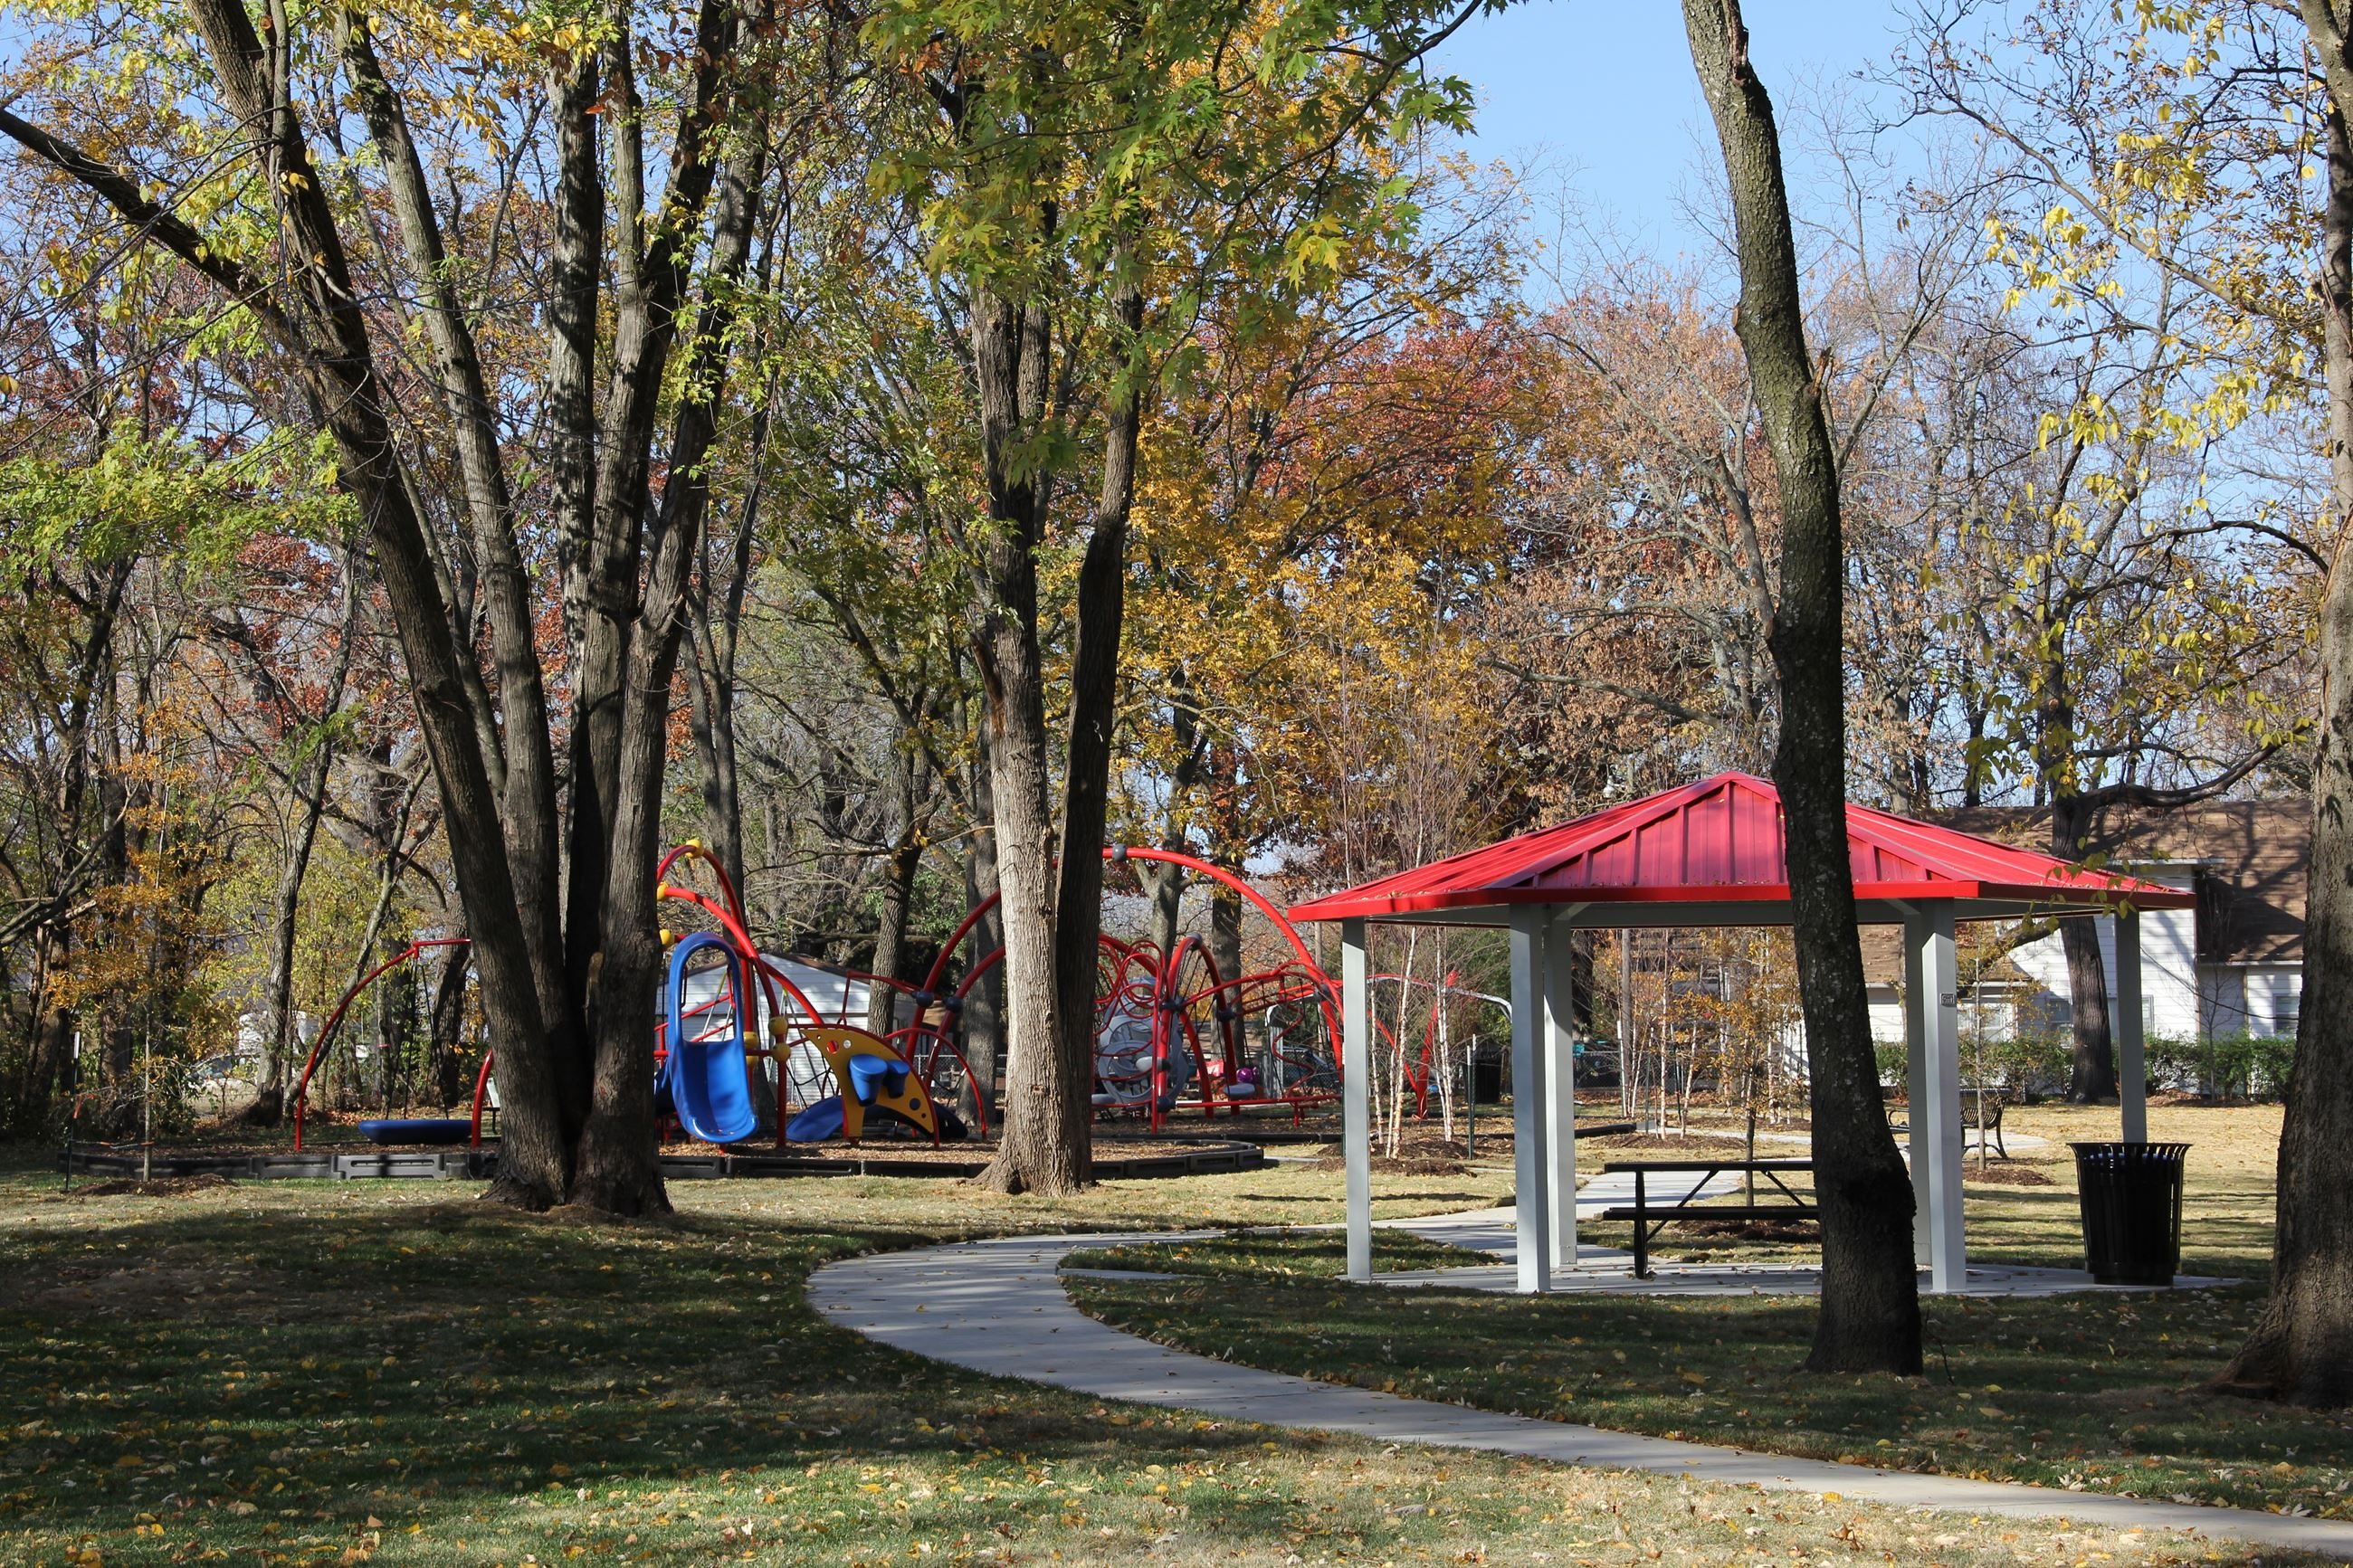 Austin-Baggett Park Image of park with sidewalk and playgrounds with trees